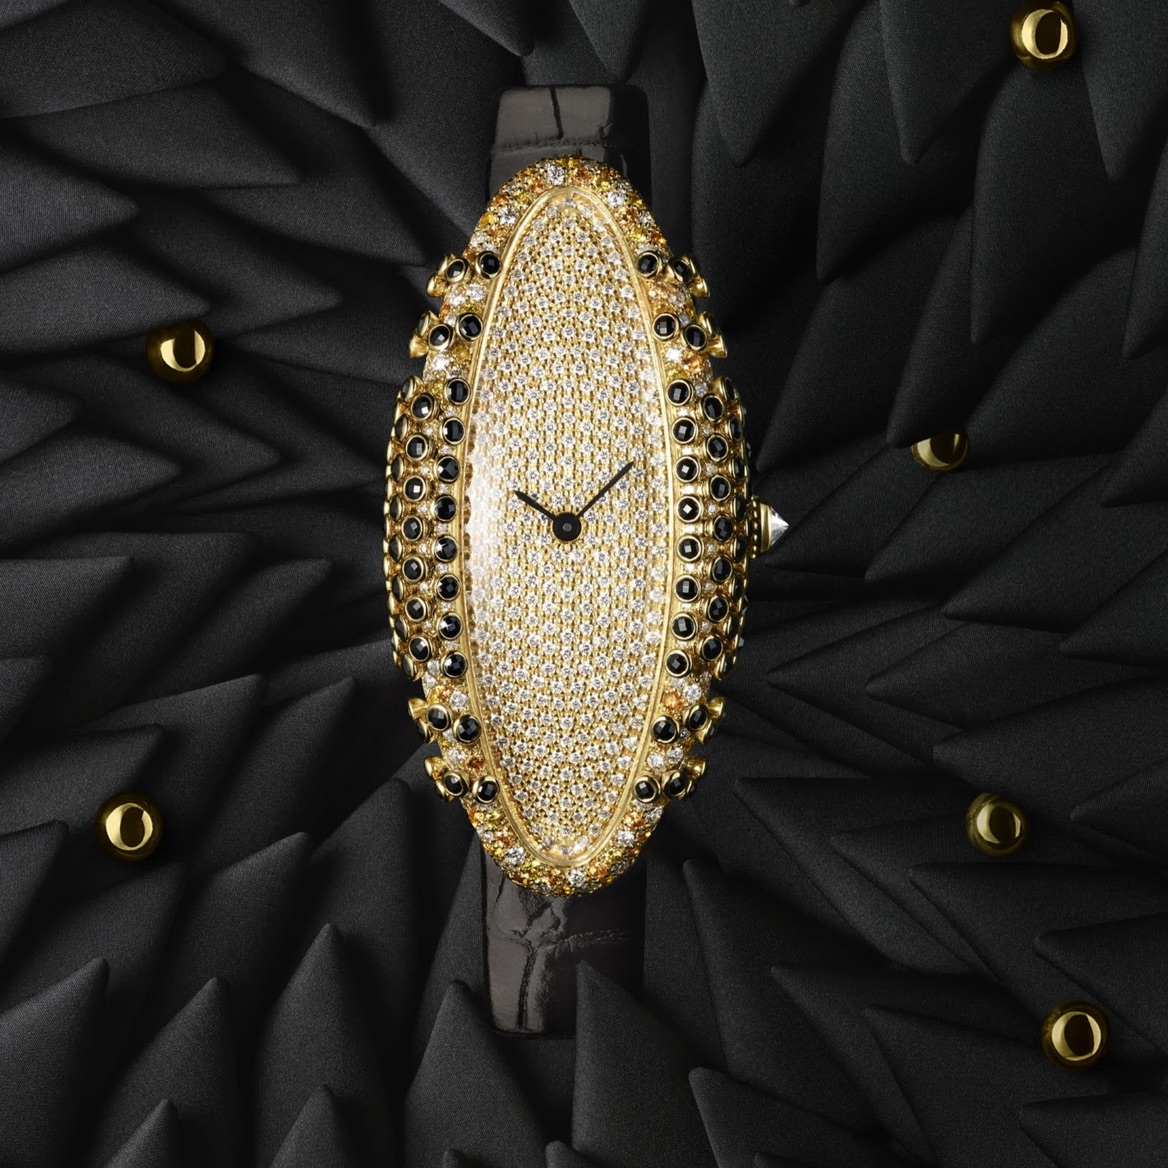 SIHH 2019 - Cartier Libre Jewelry collection - 2